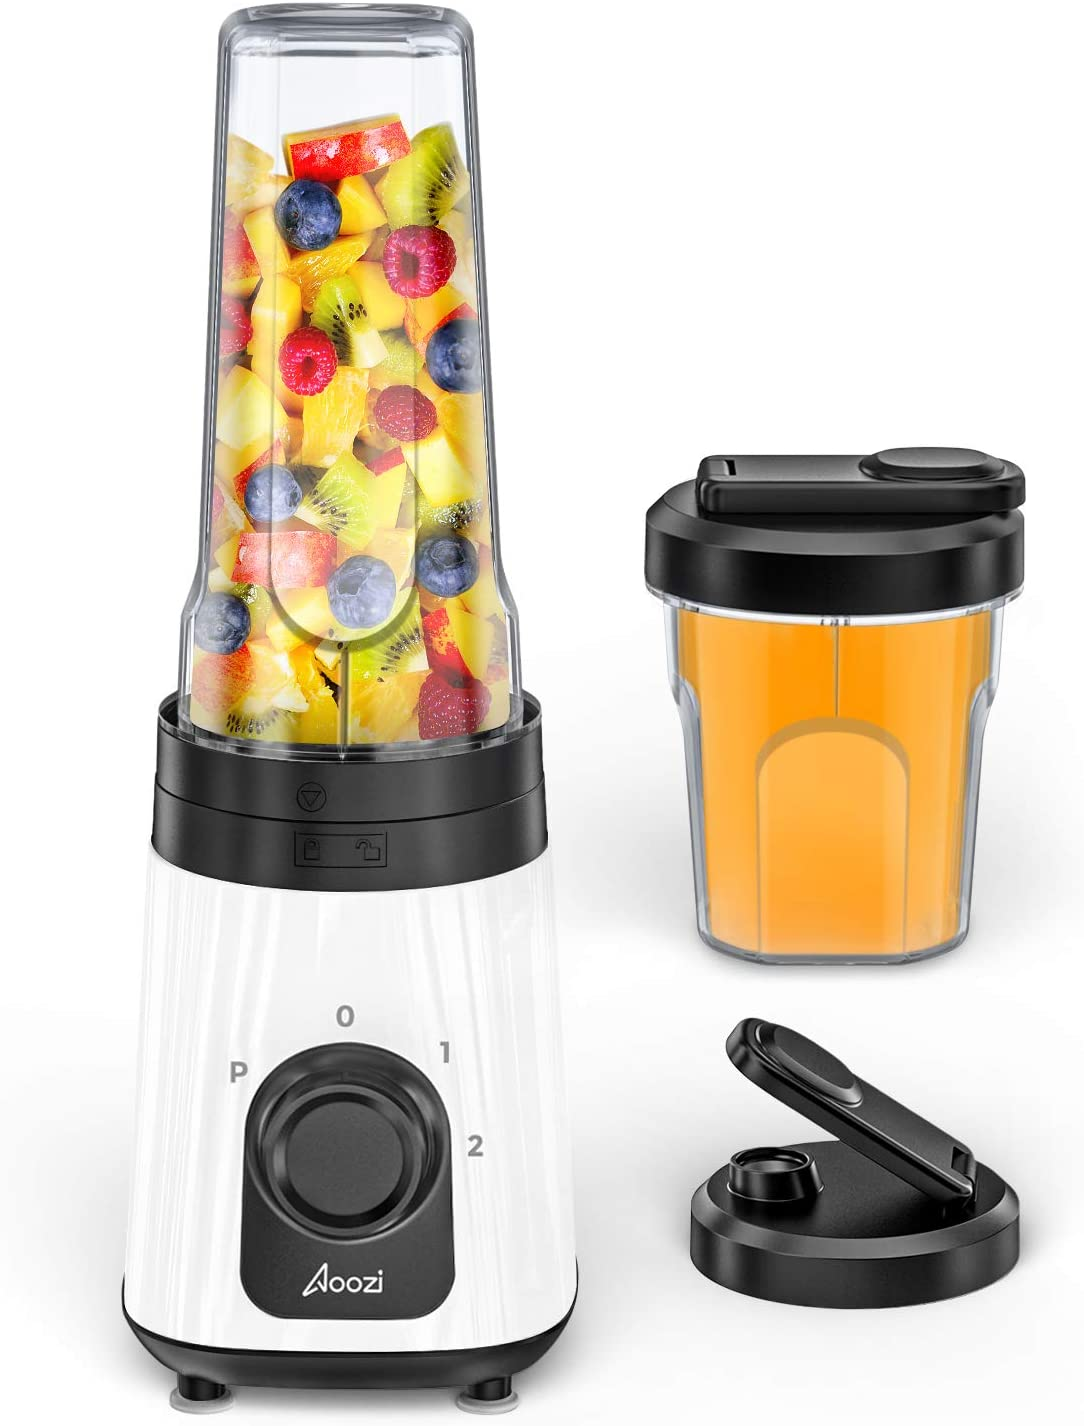 Personal Blender for Shakes and Smoothies, Single Serve Portable Smoothie Blender, Small Smoothie Maker with 3 Adjustable Speeds, 20Oz & 10Oz Blender Cups with Spout Lids